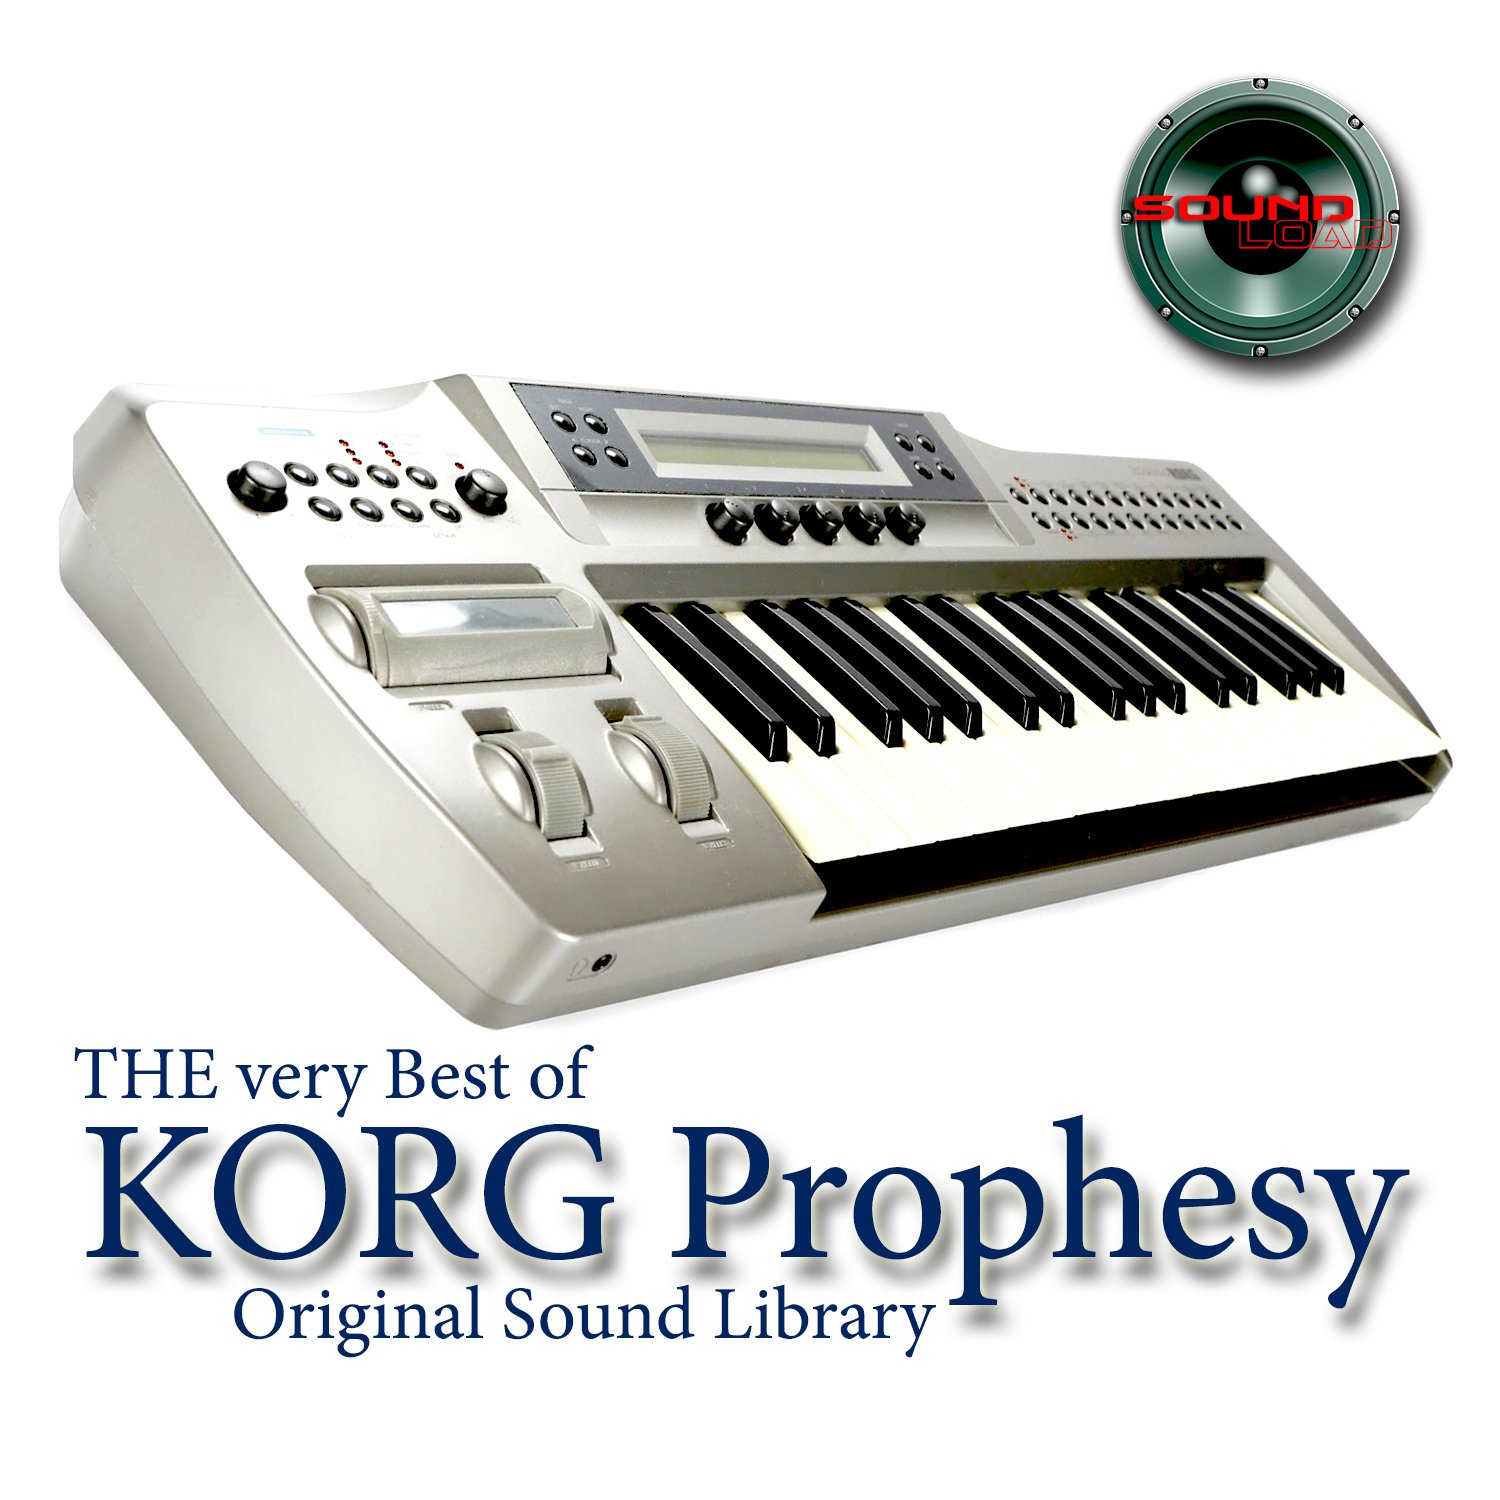 KORG PROPHESY - Large Sound Library - Original Samples in WAVEs format on DVD or for download